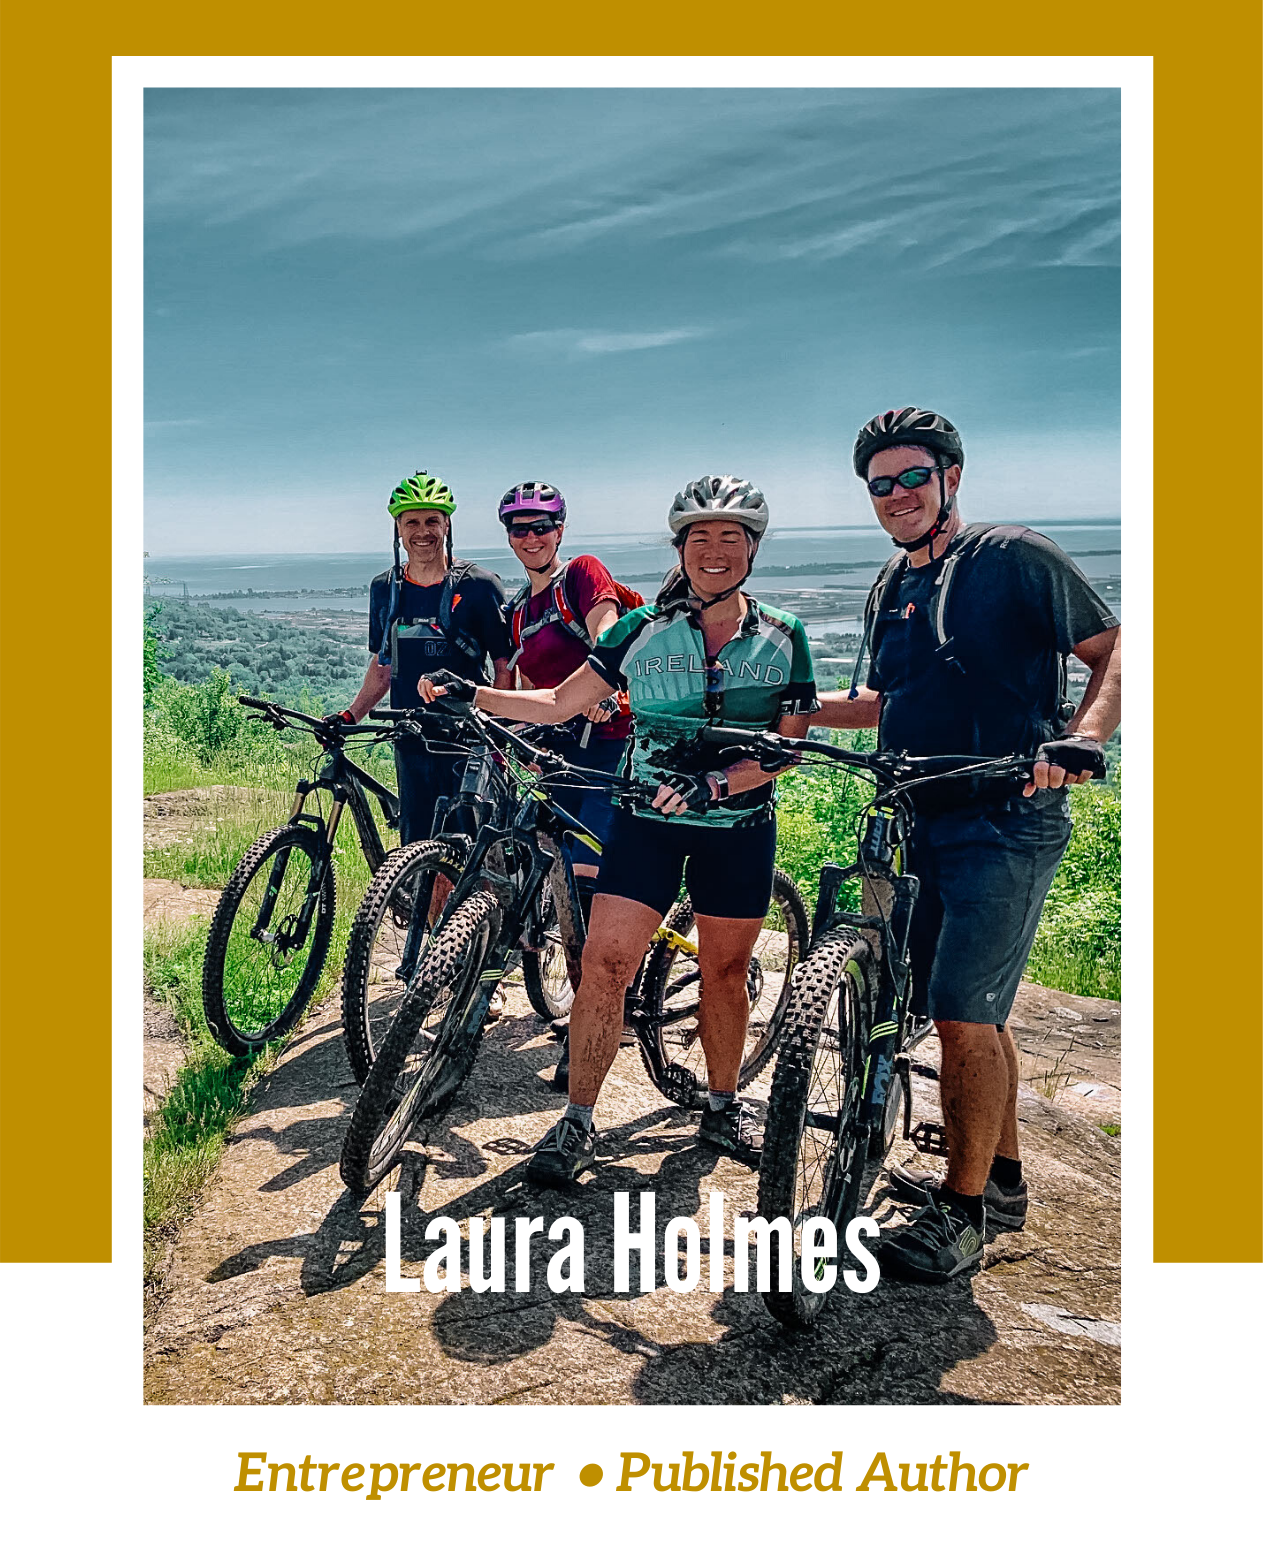 Rachel Off Duty: Stories Beyond the 9 to 5 - Episode 4 - Laura Holmes